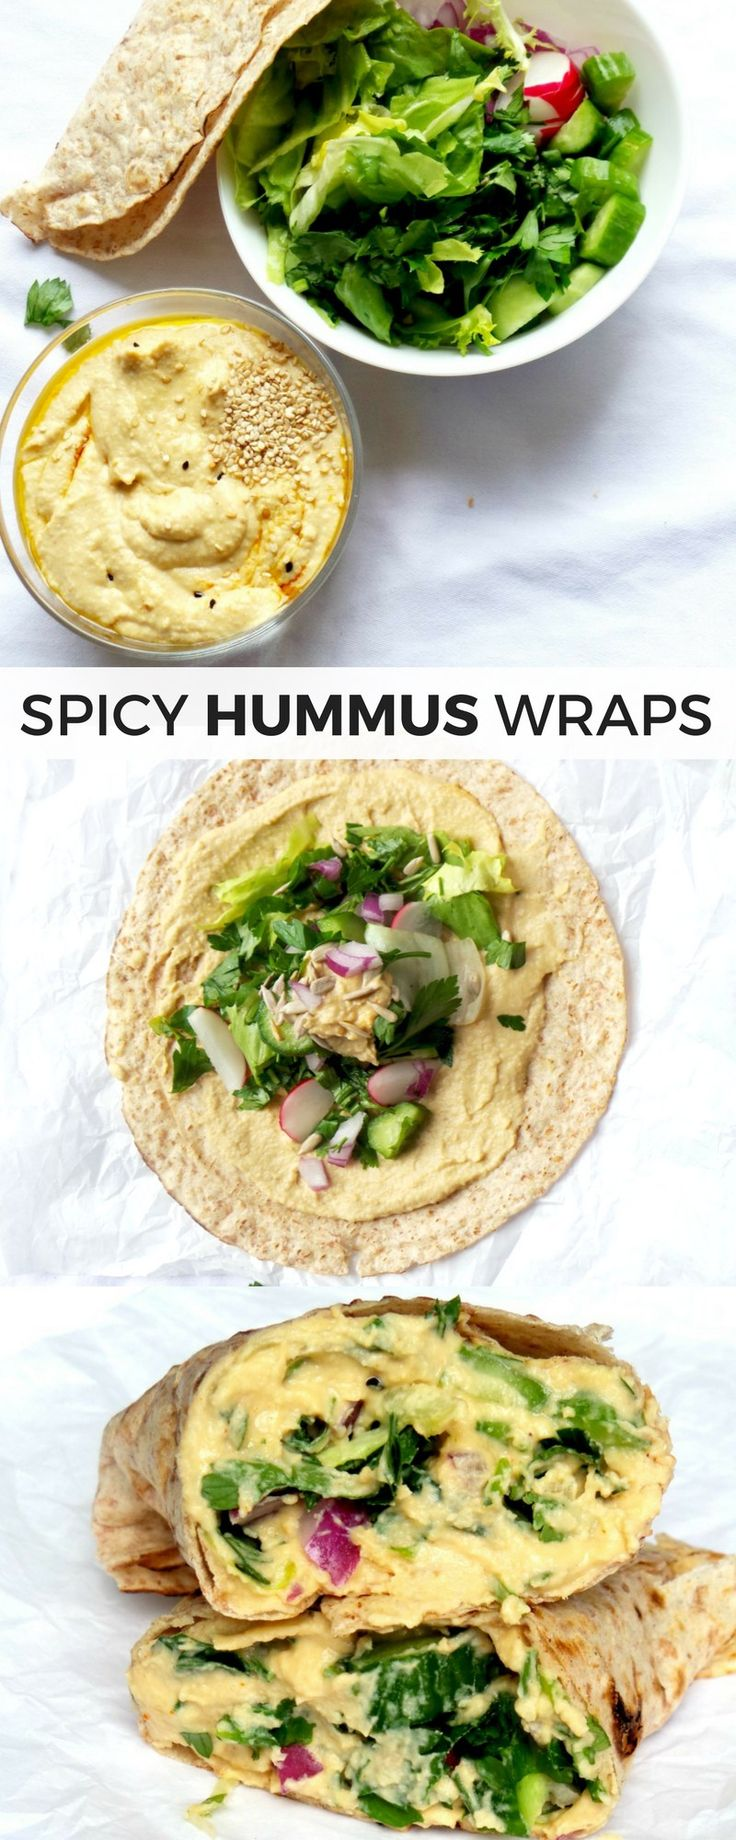 Delicious healthy vegan wrap recipe with hummus - a hummus wrap with vegetables! This is a tasty and super easy healthy lunch recipe